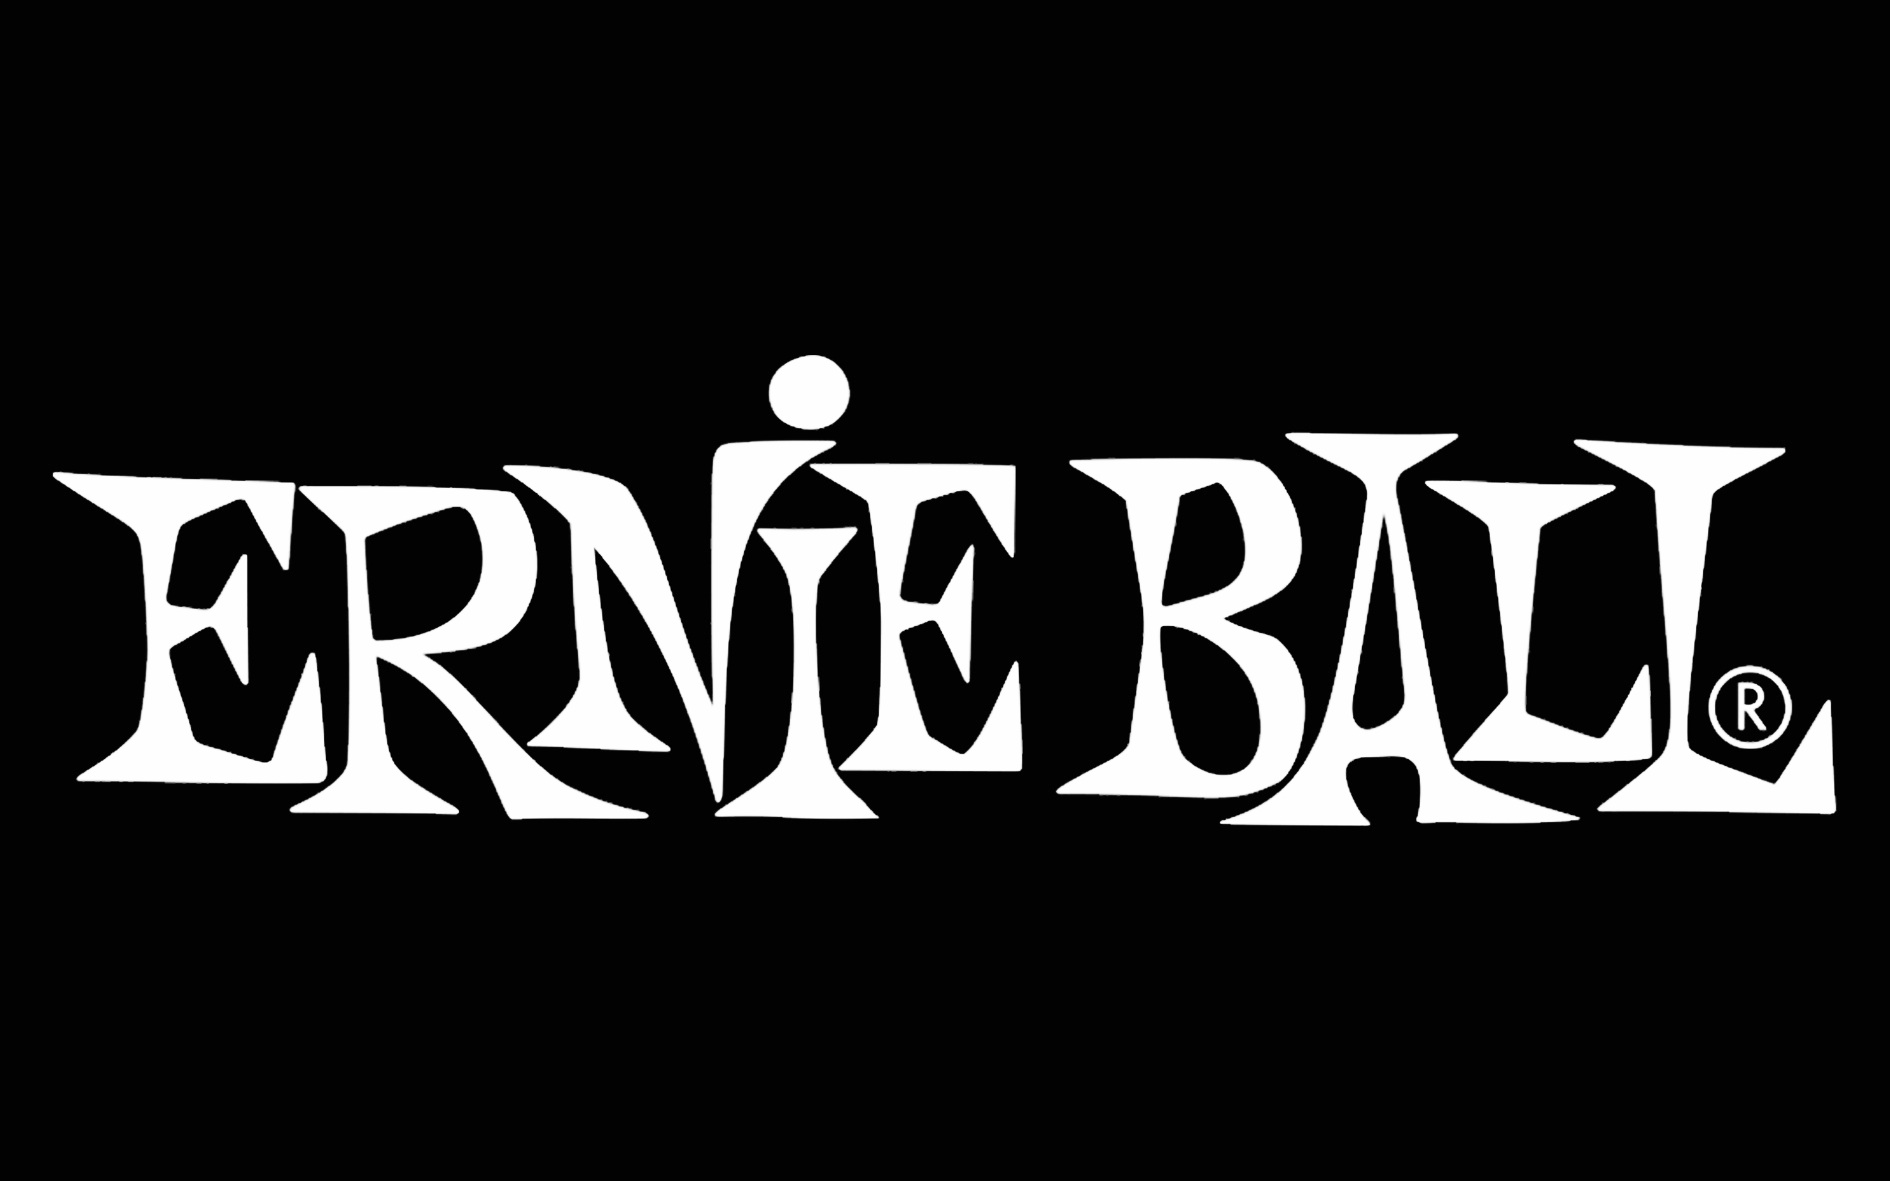 Ernie Ball